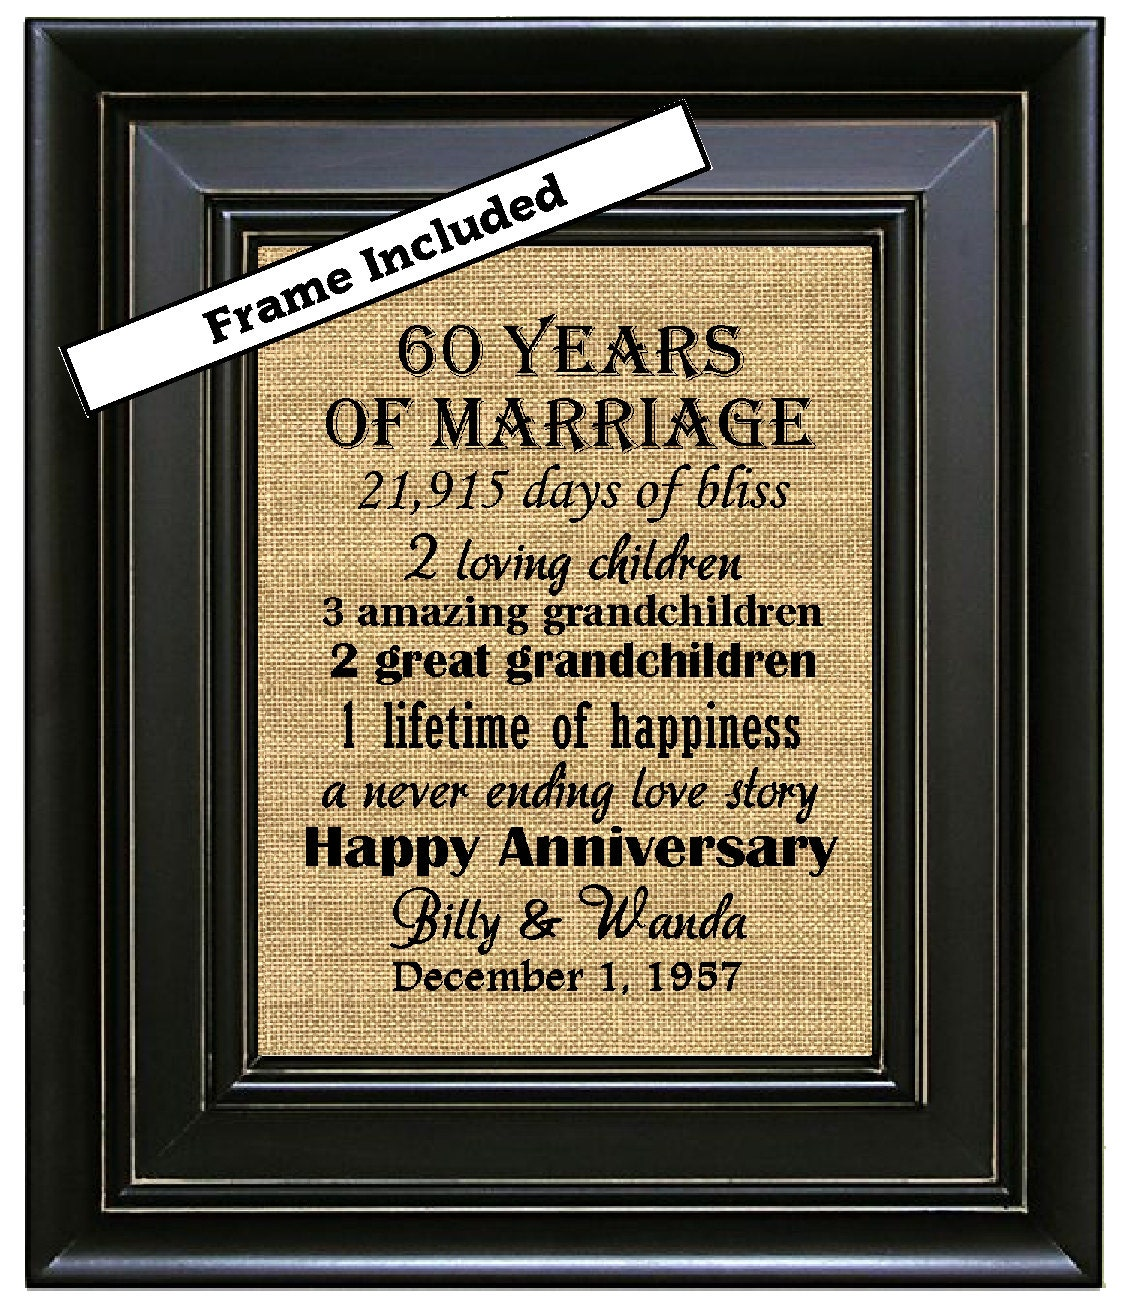 What Is The Traditional Wedding Anniversary Gifts: FRAMED 60th Wedding Anniversary/60th Anniversary Gifts/60th